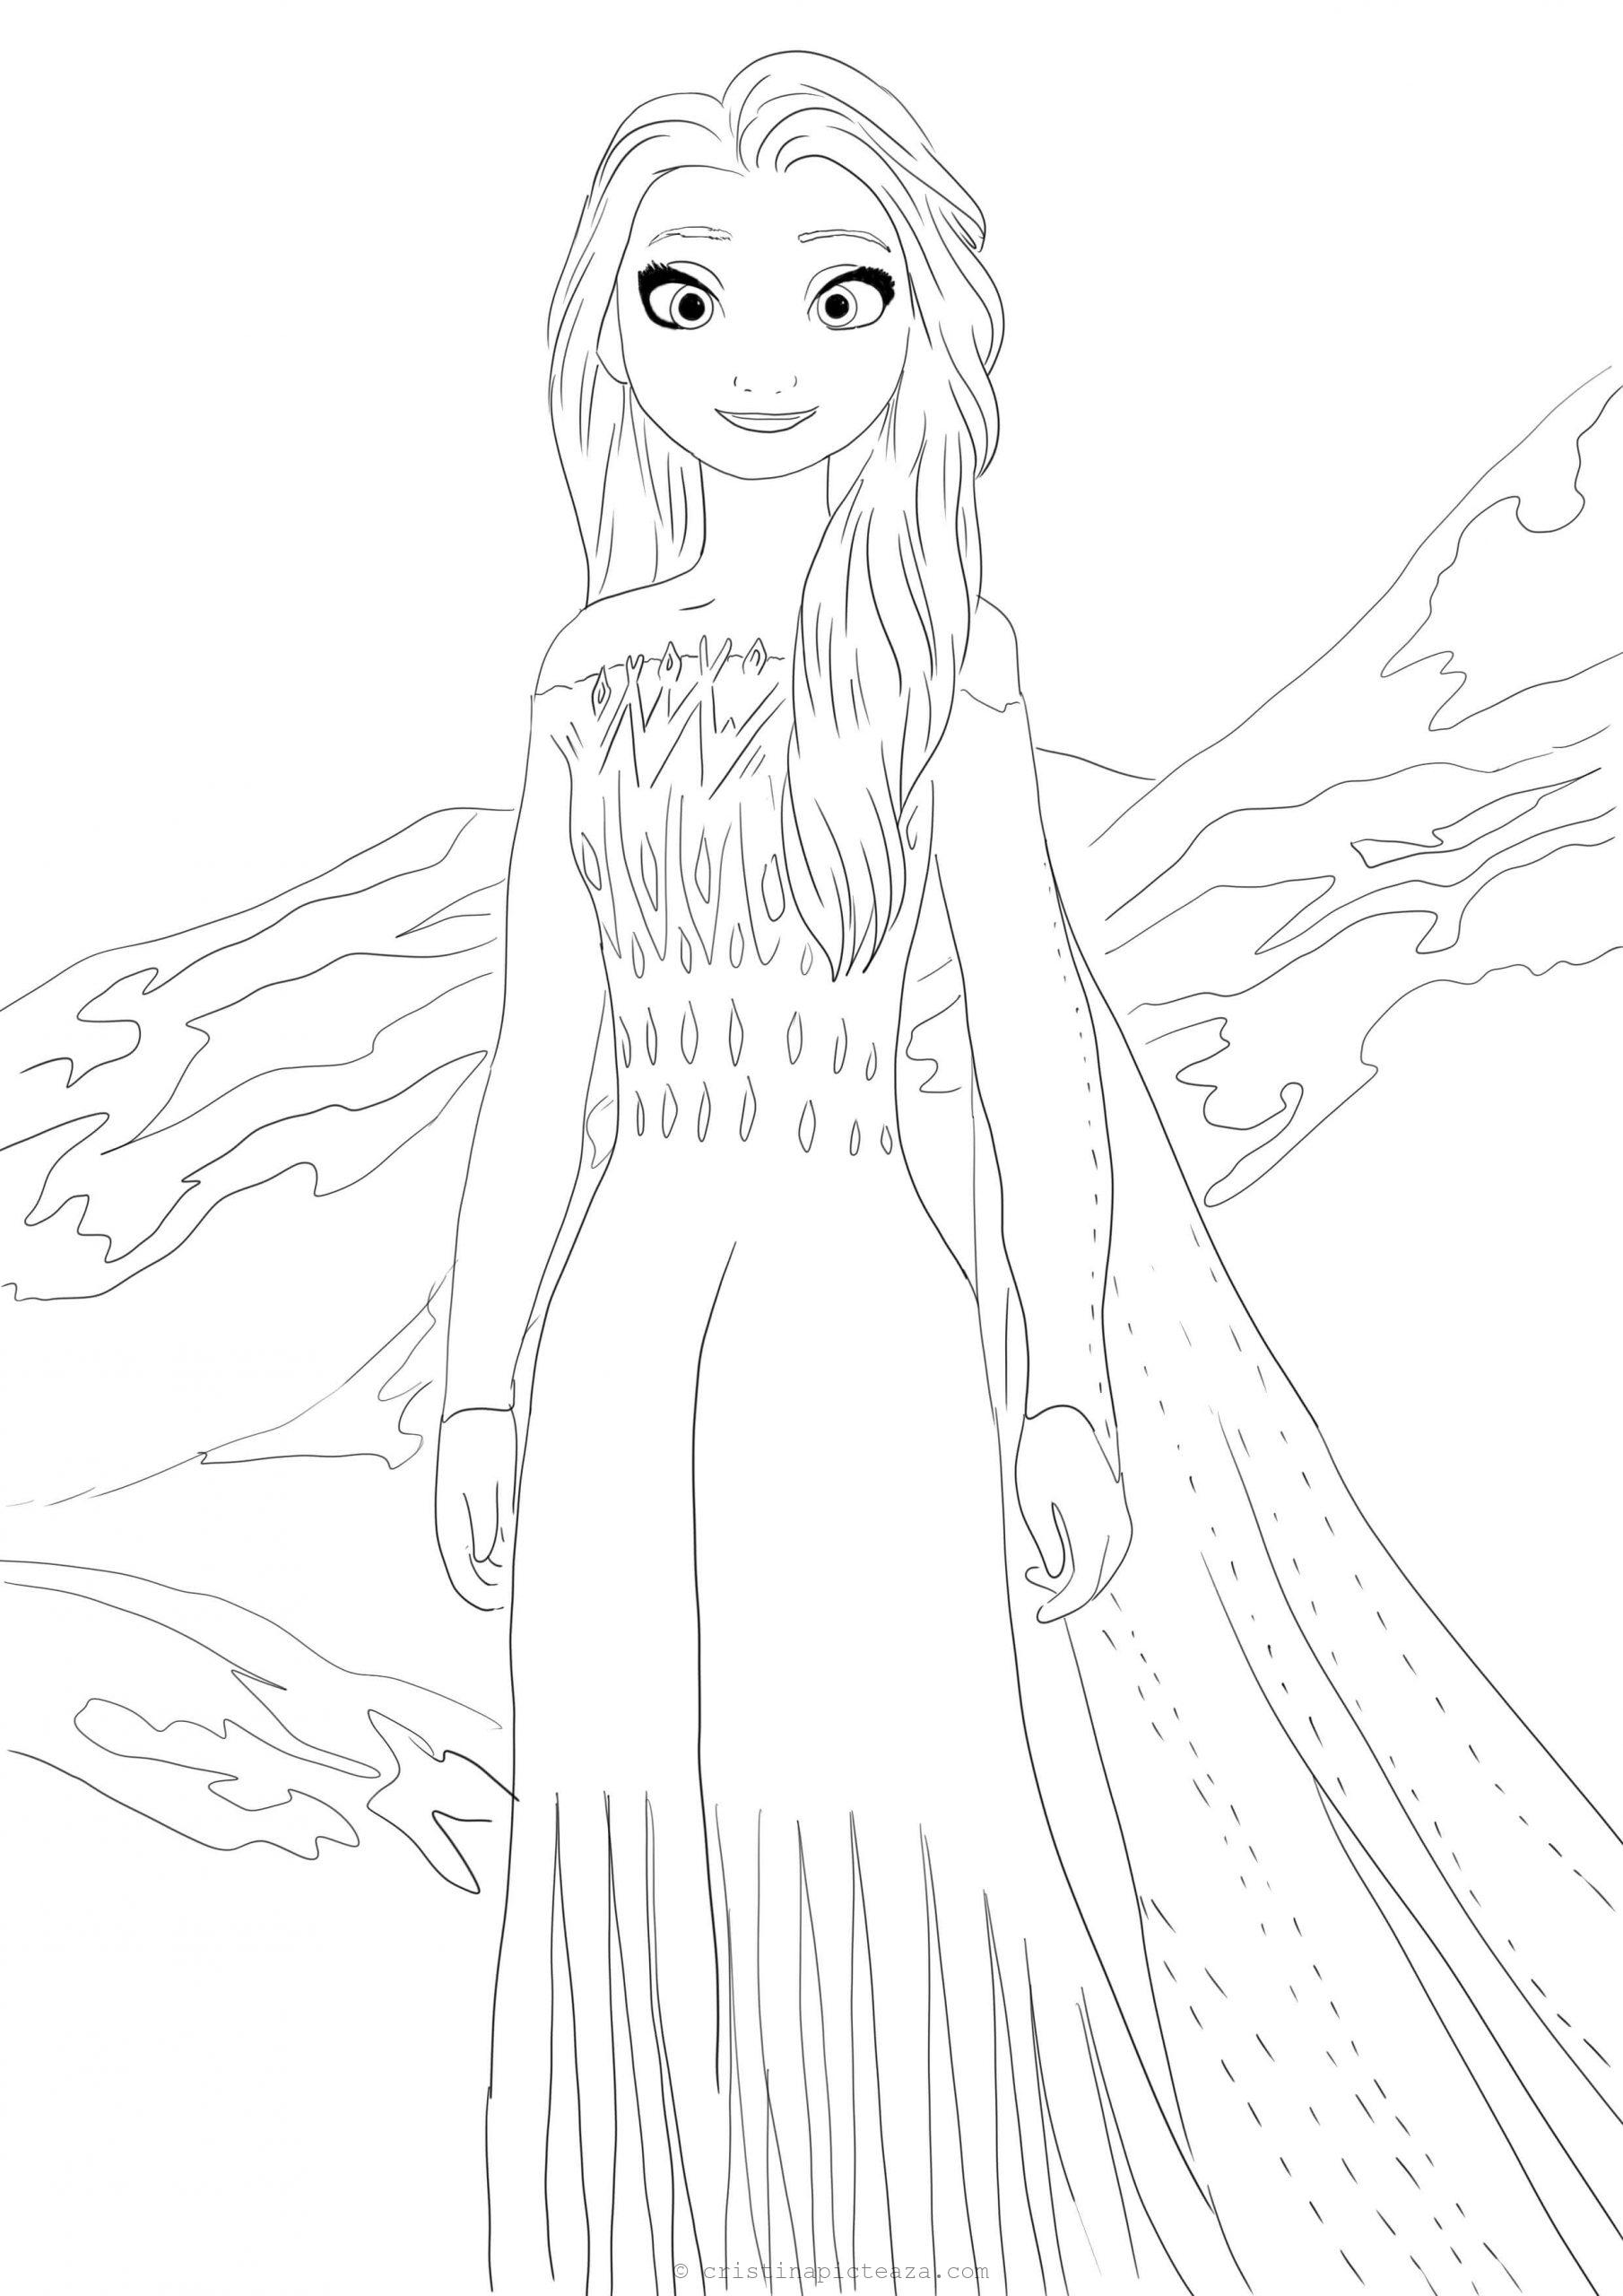 elsa frozen coloring sheets coloring pages elsa frozen 2 drawing online coloring for sheets elsa coloring frozen